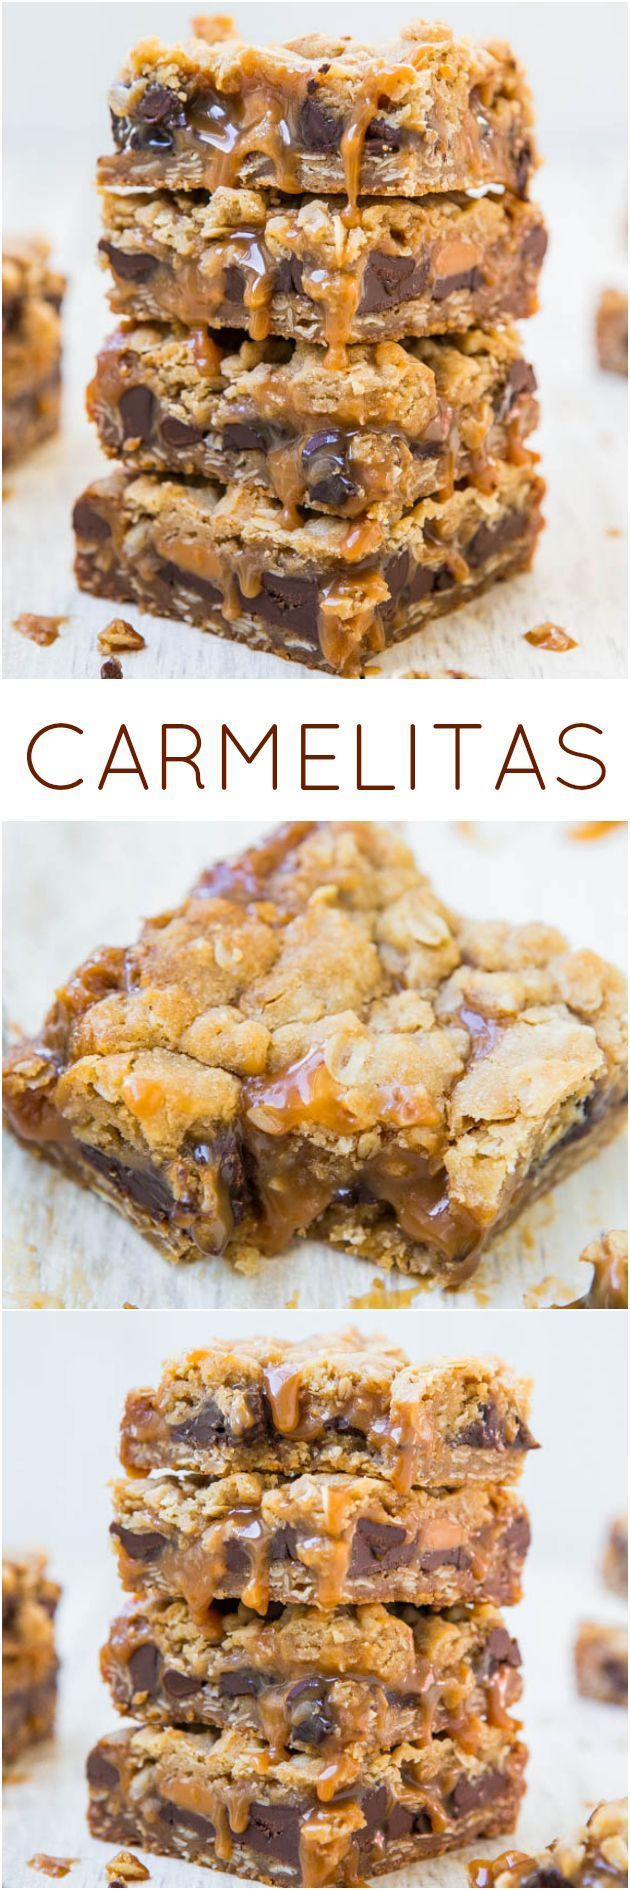 Carmelitas - Easy one-bowl, no-mixer recipe. With a name like that, they have to be good!